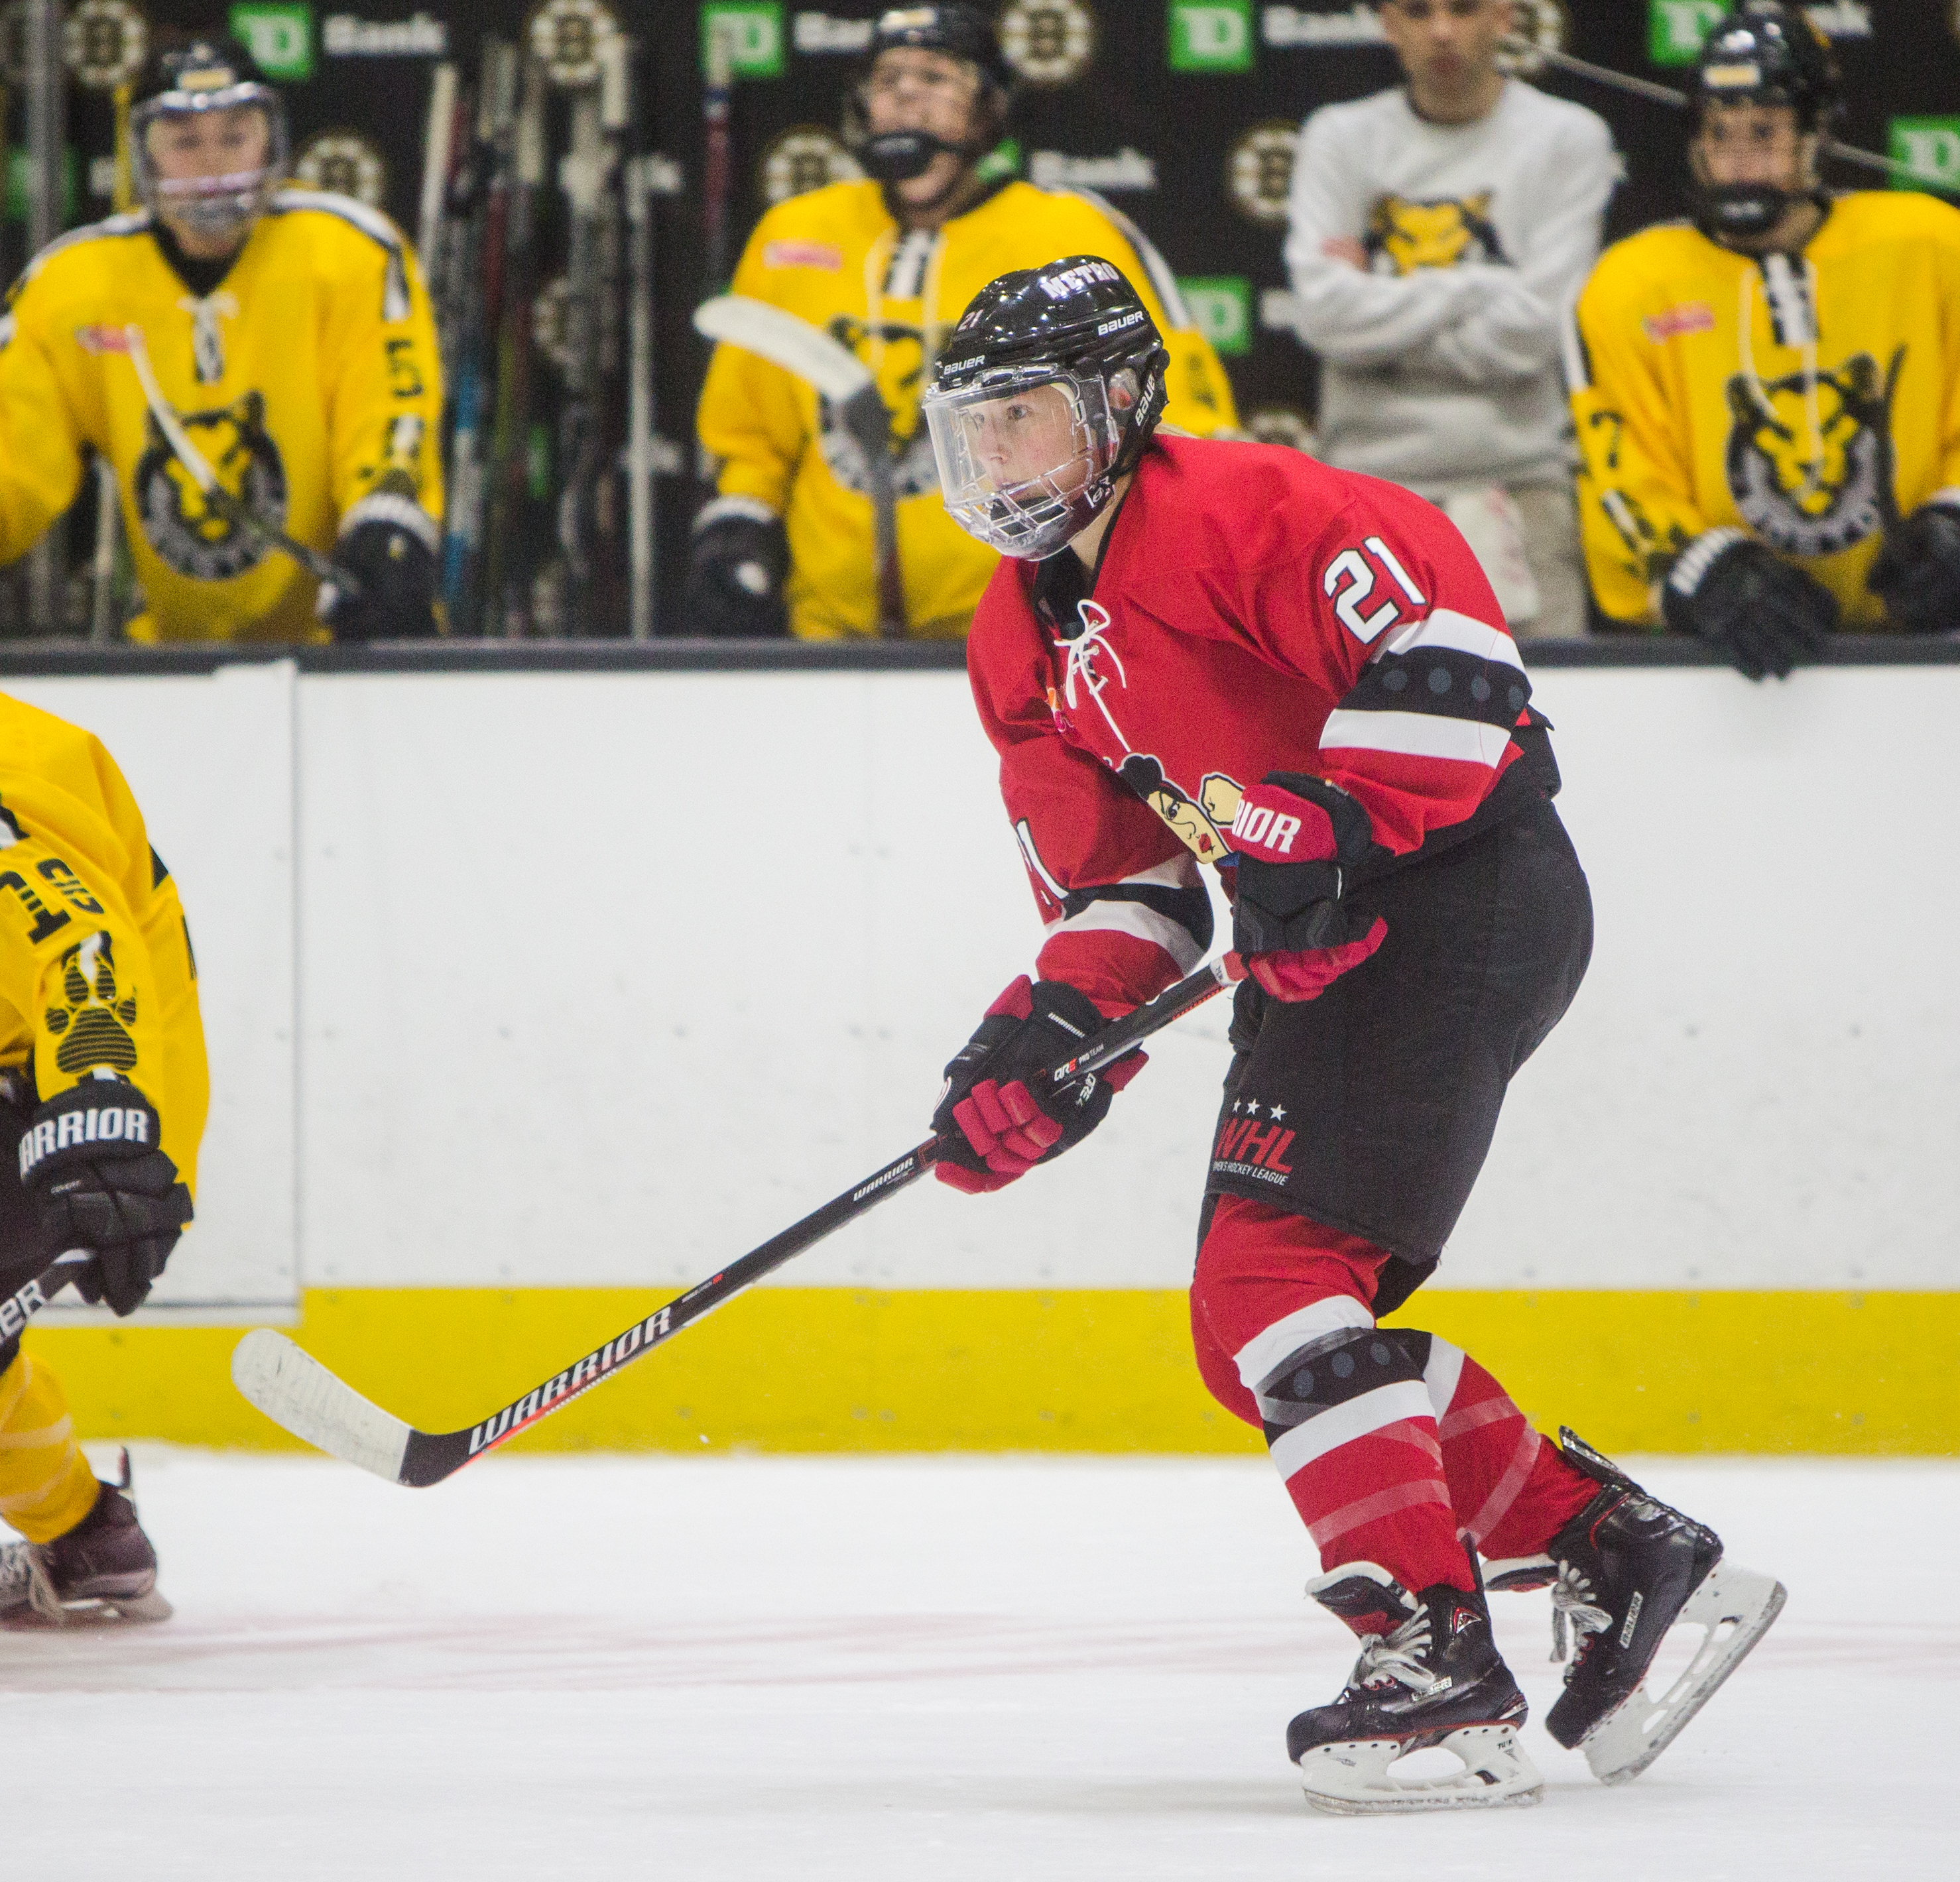 d84daedaa Riveters look to regroup after Thanksgiving